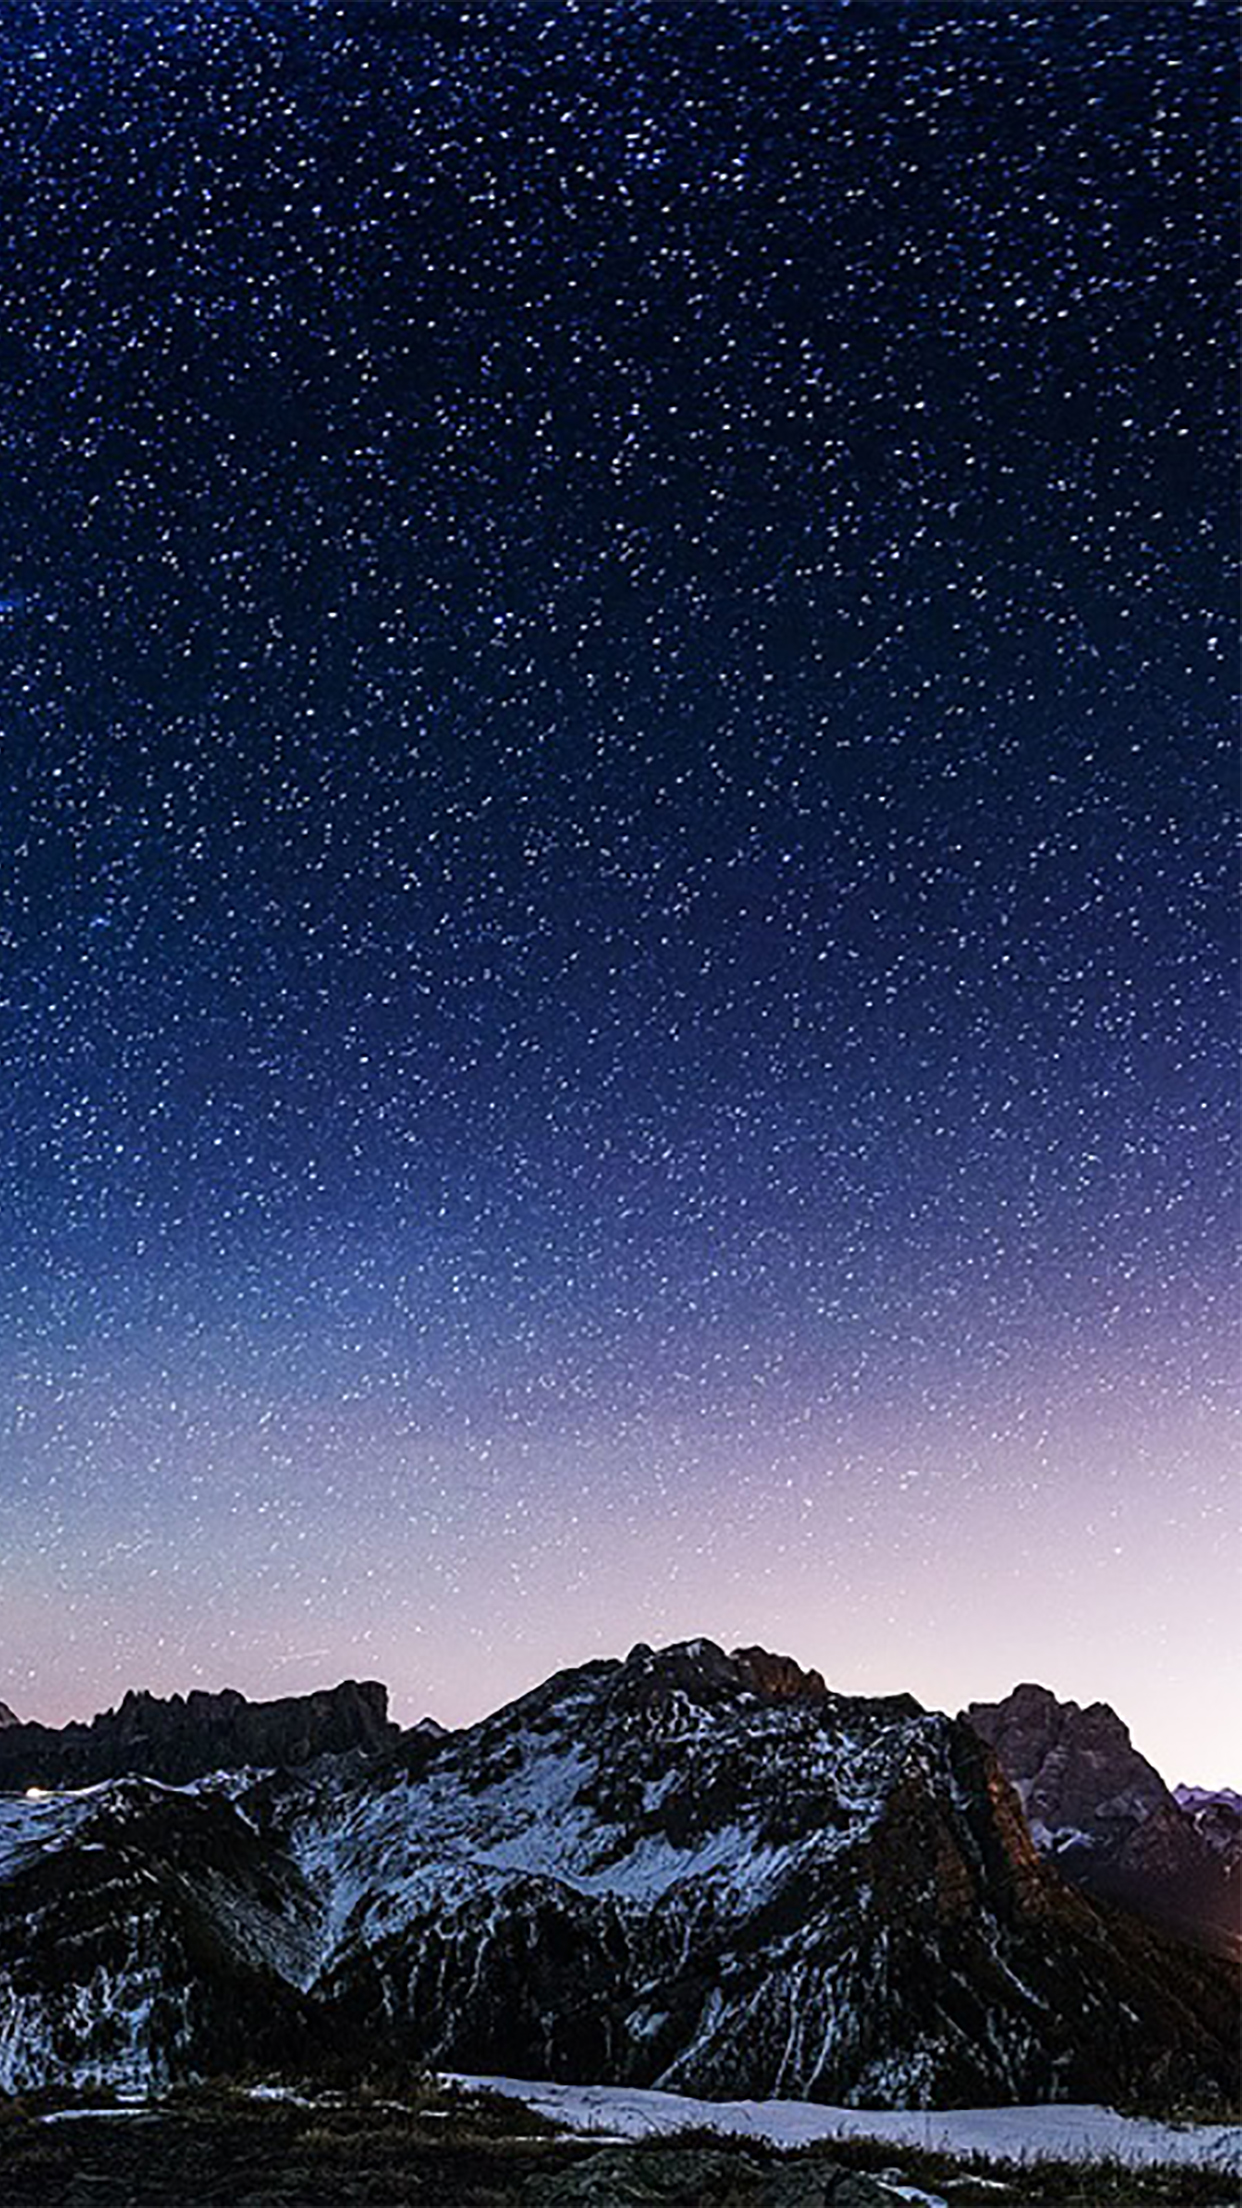 Sky Sky with Stars 3Wallpapers iPhone Parallax Sky : Sky with stars